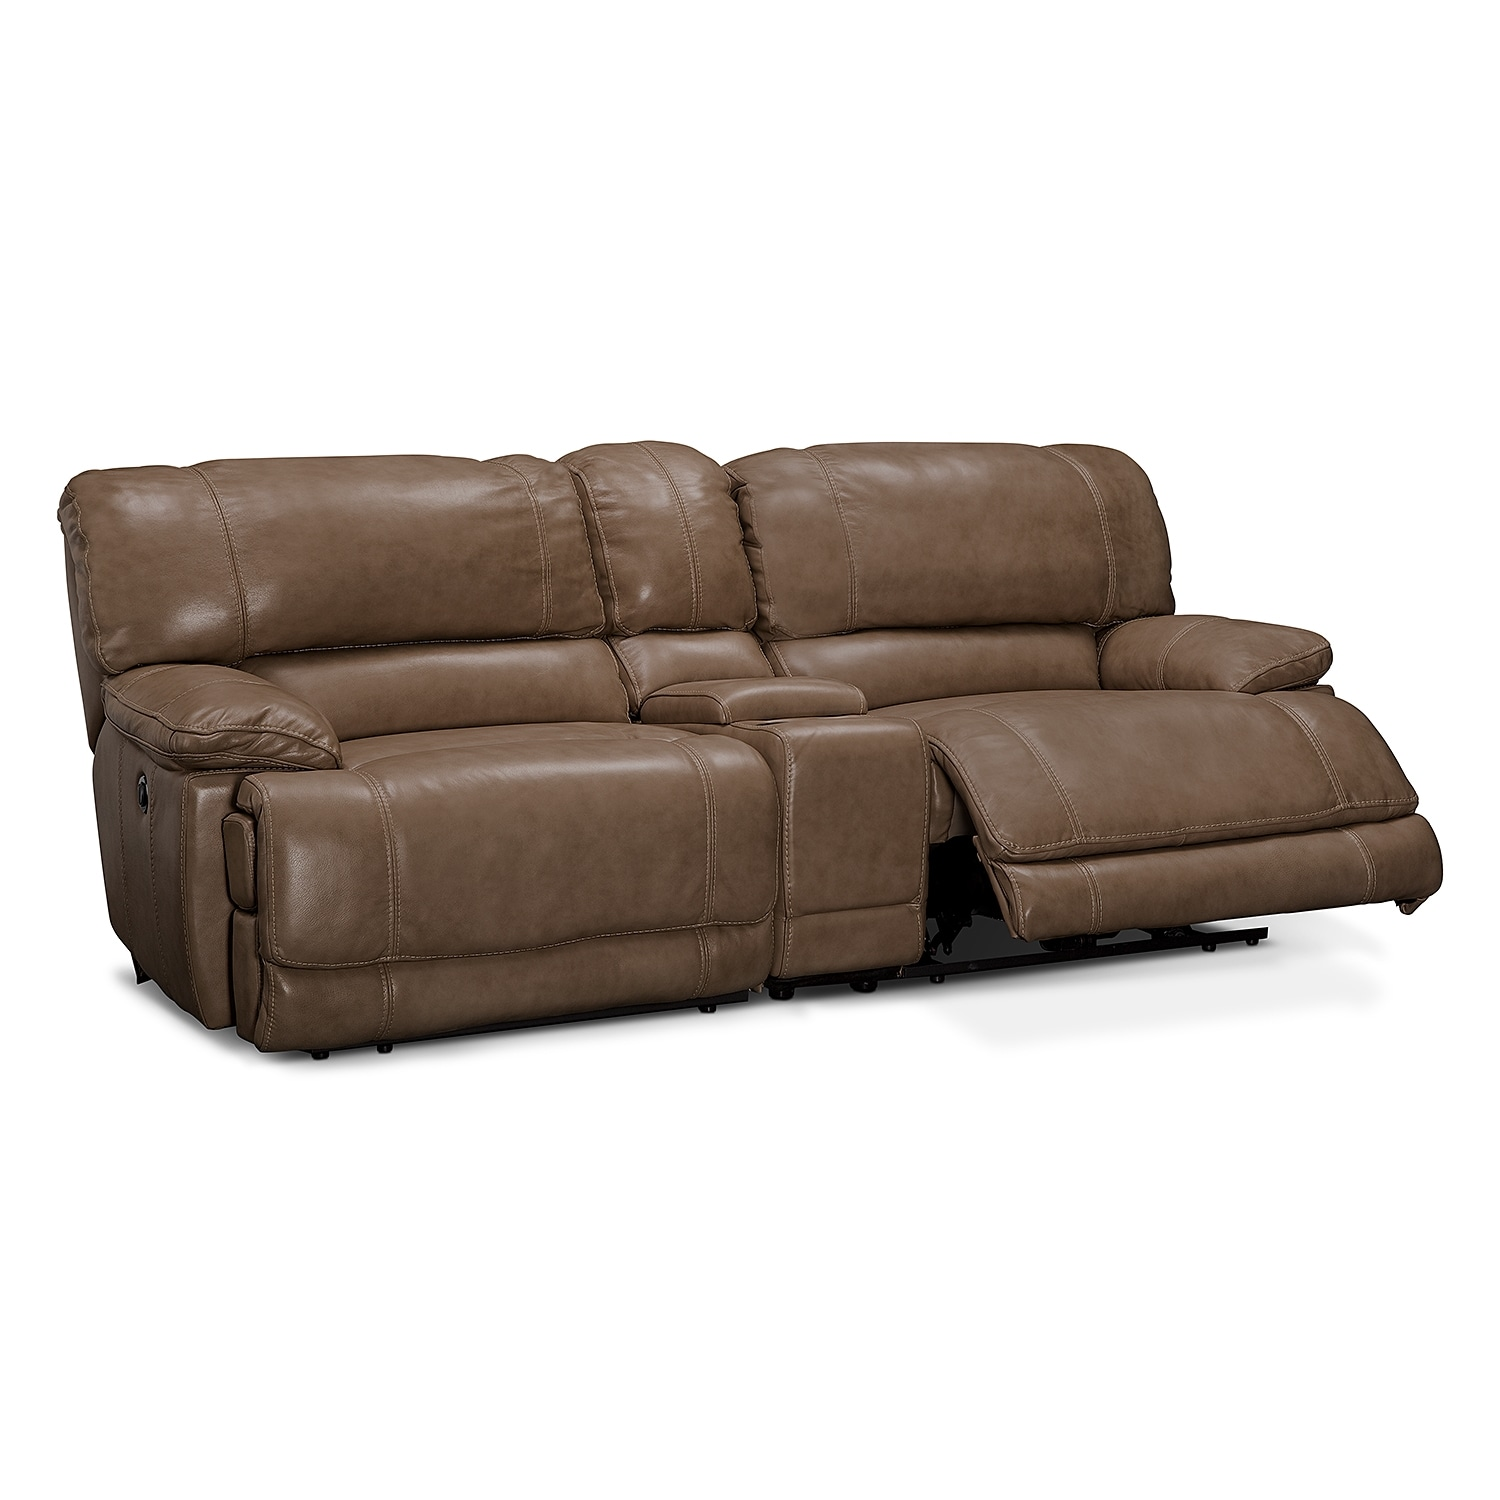 St malo power reclining sofa with console taupe for Couch console